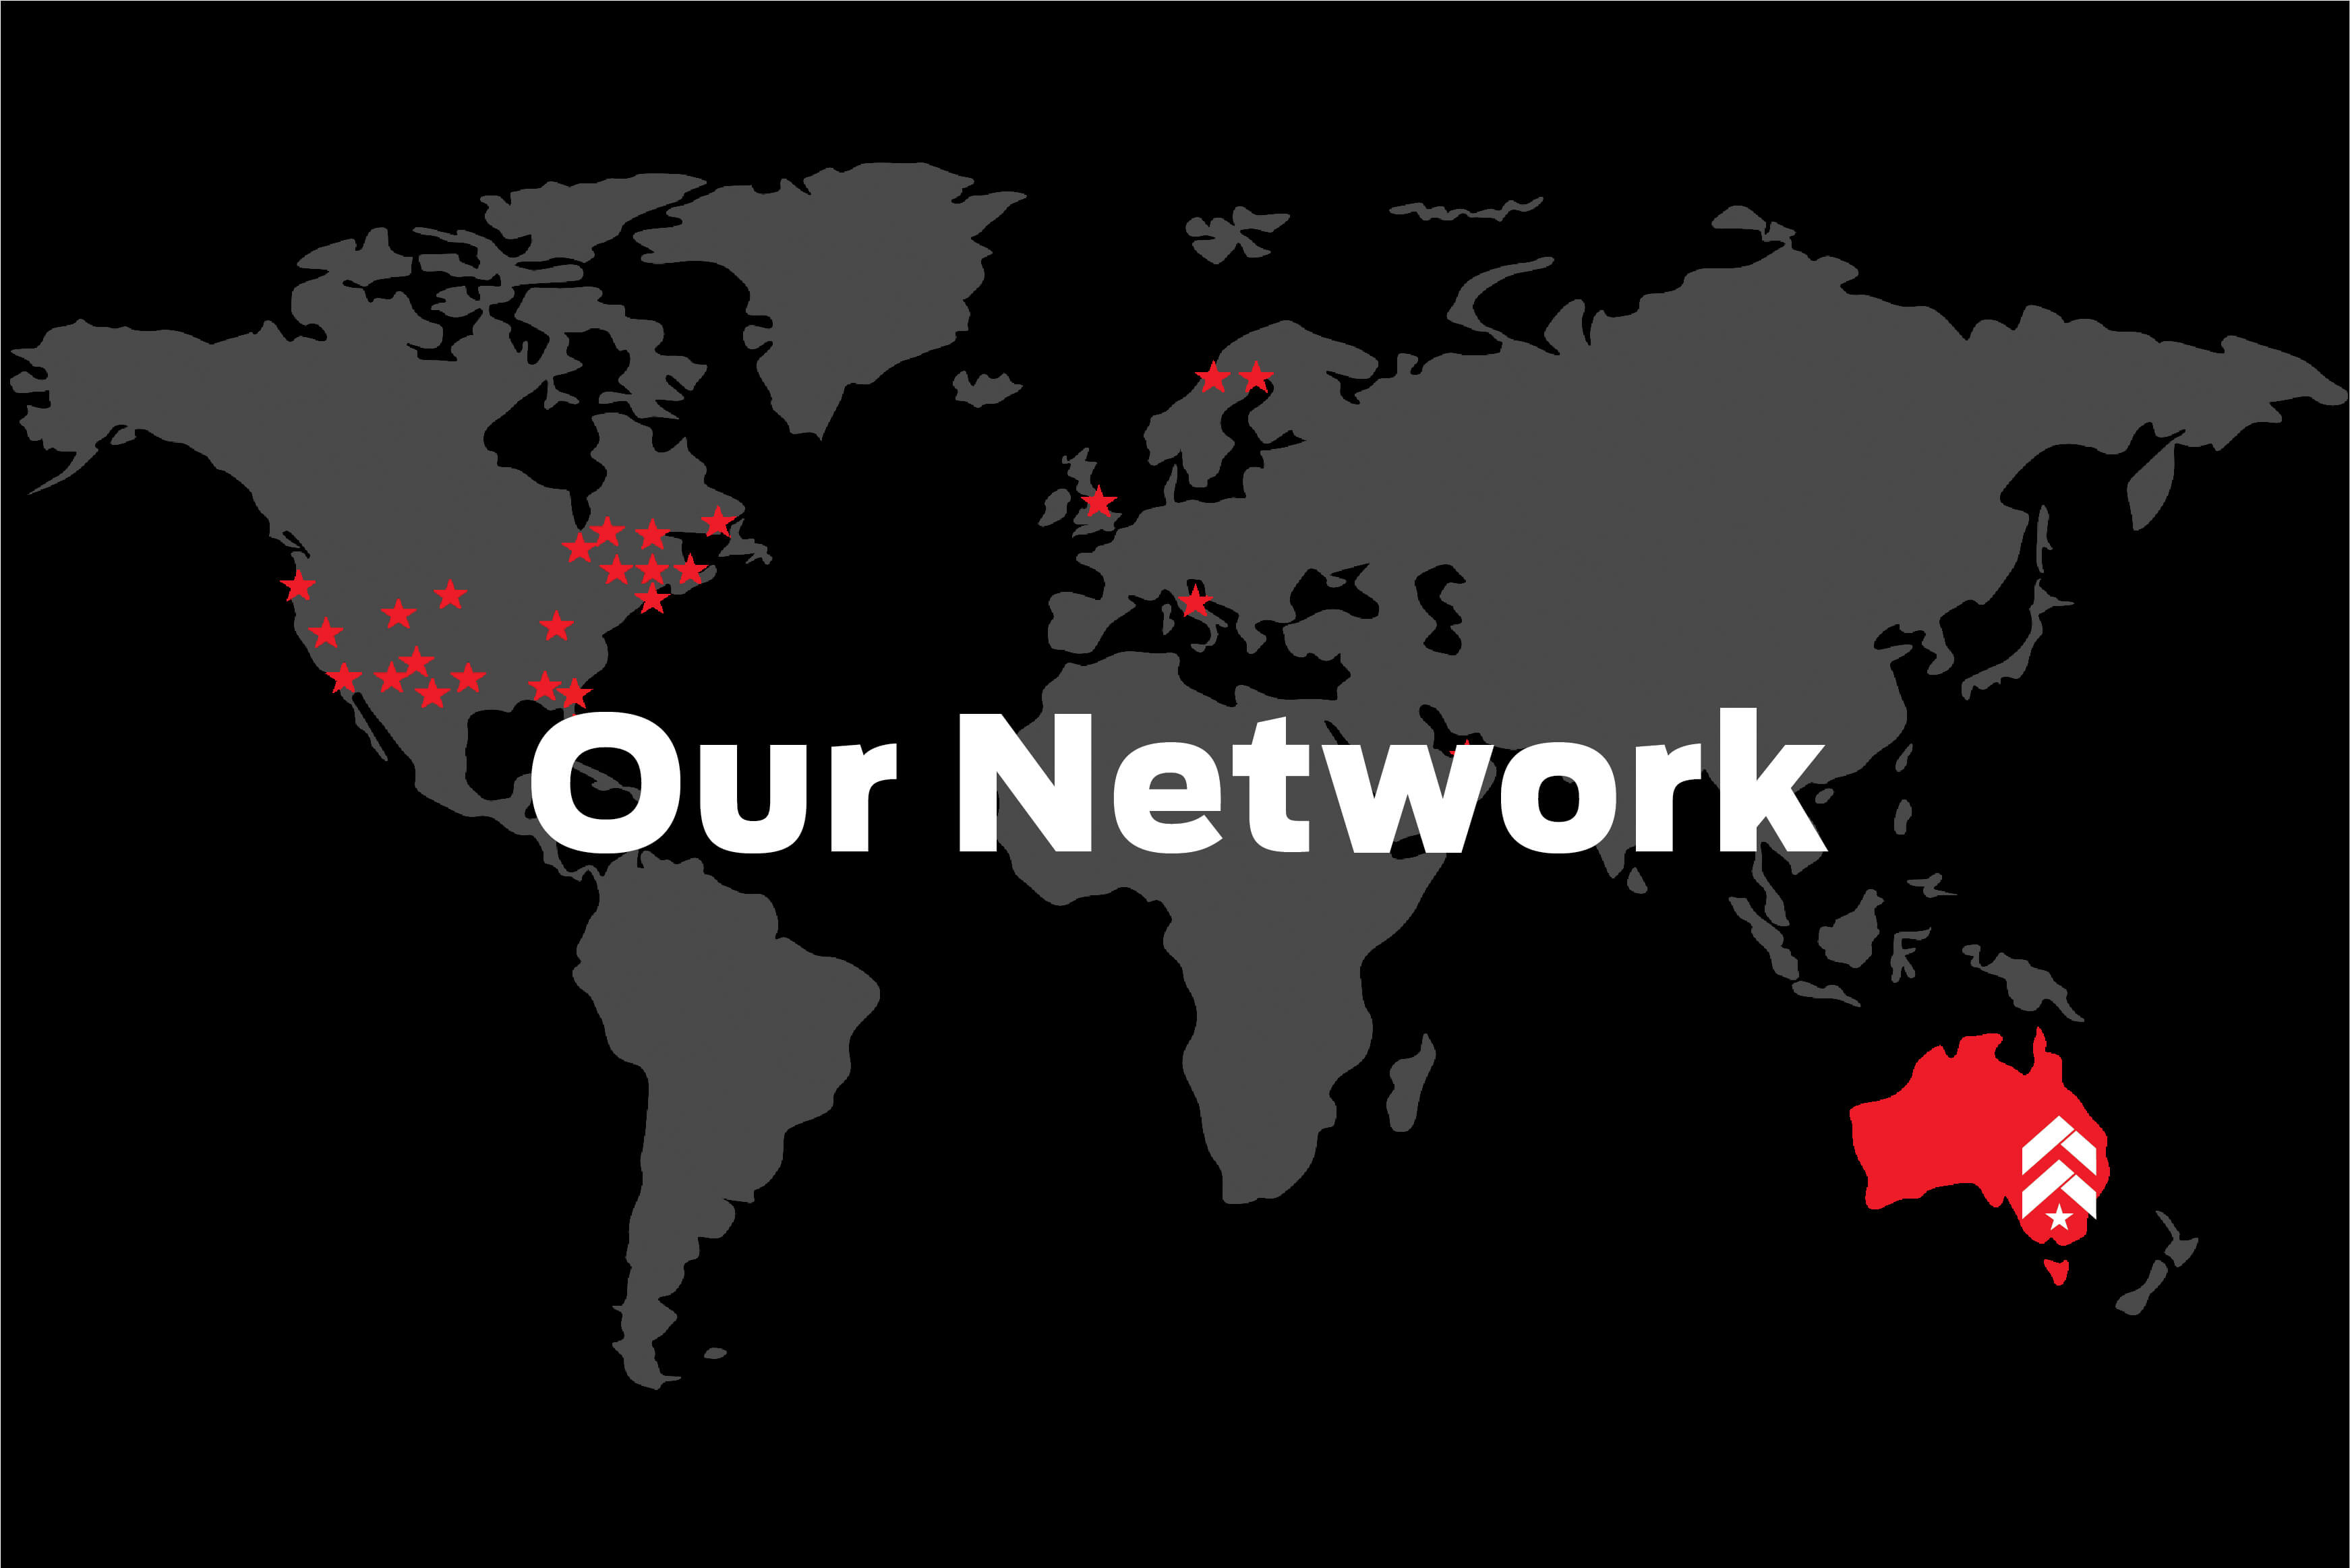 Barry's global network map